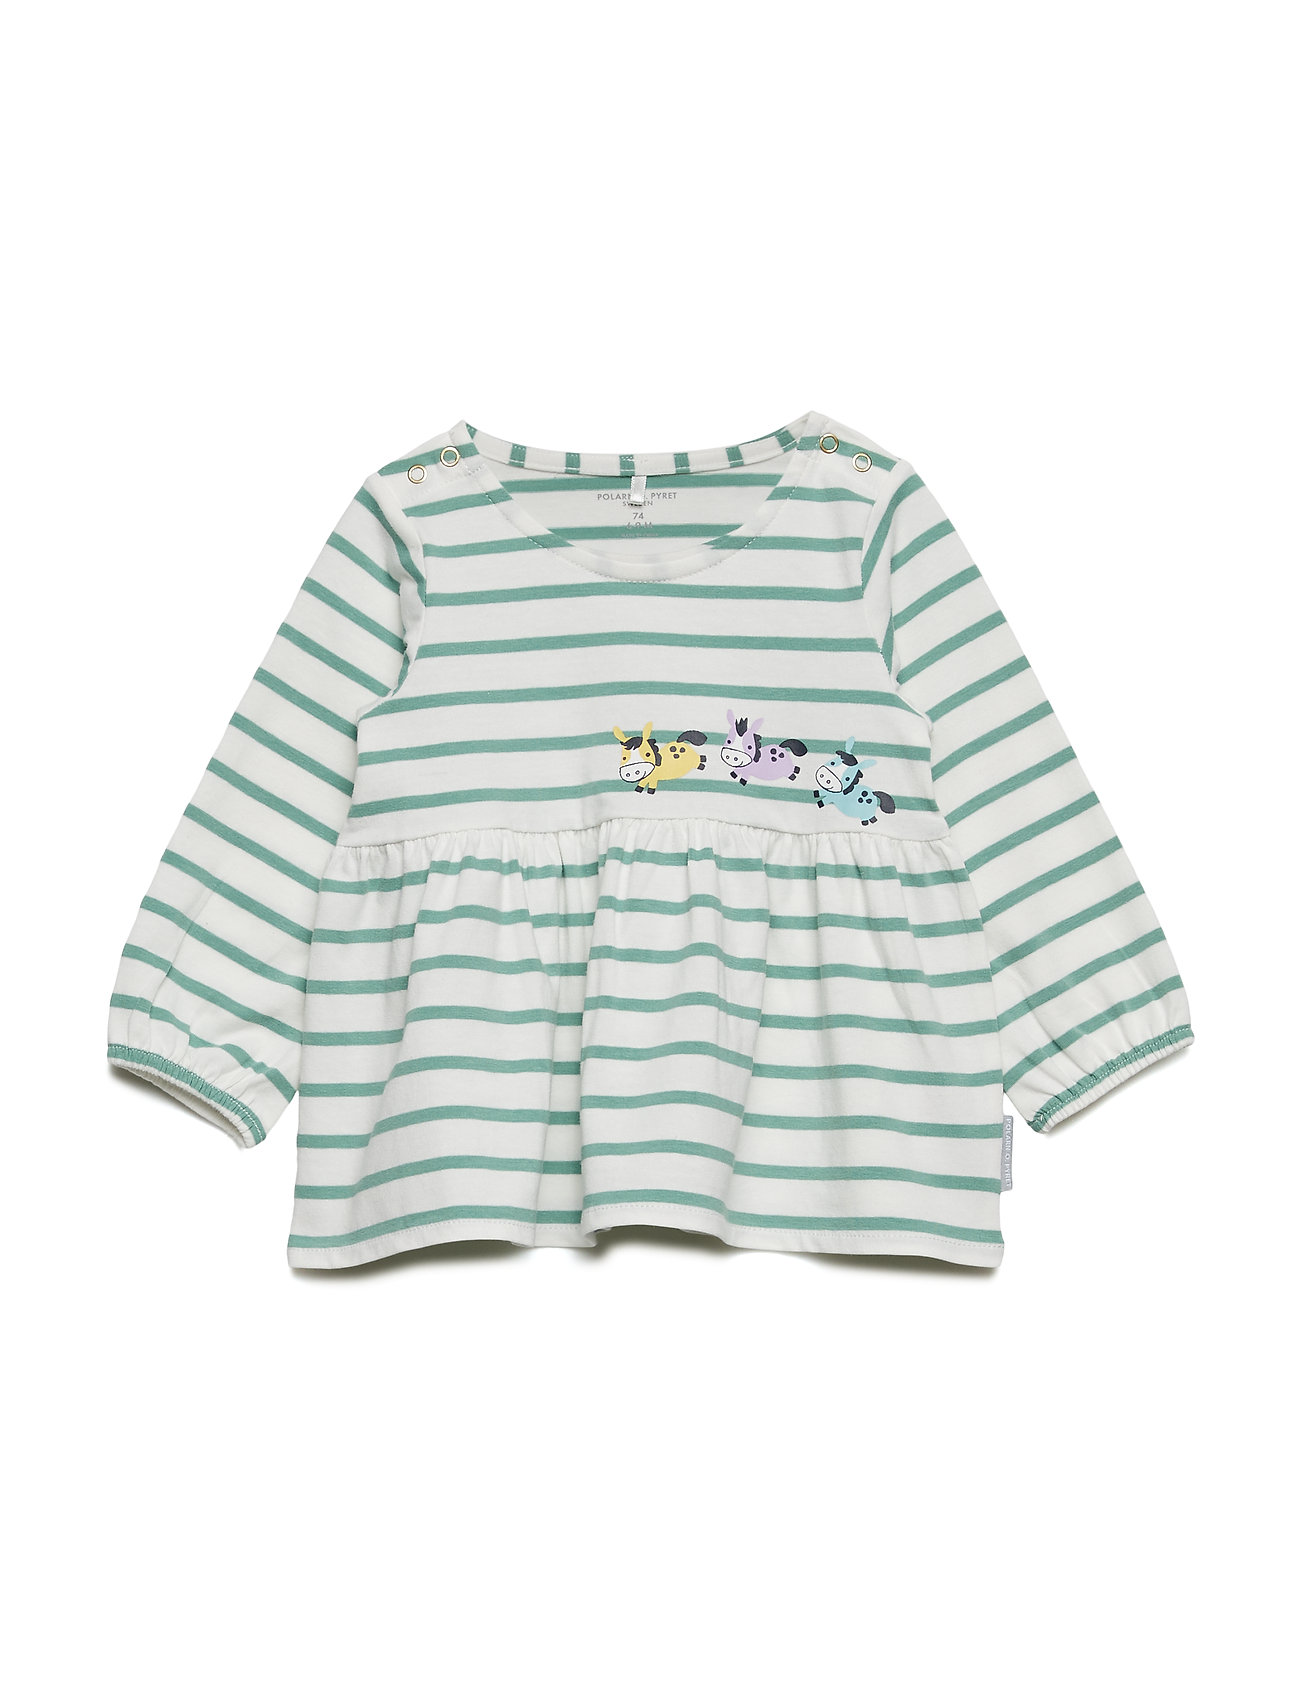 Polarn O. Pyret Top Long Sleeve Embroidery Baby - SNOW WHITE